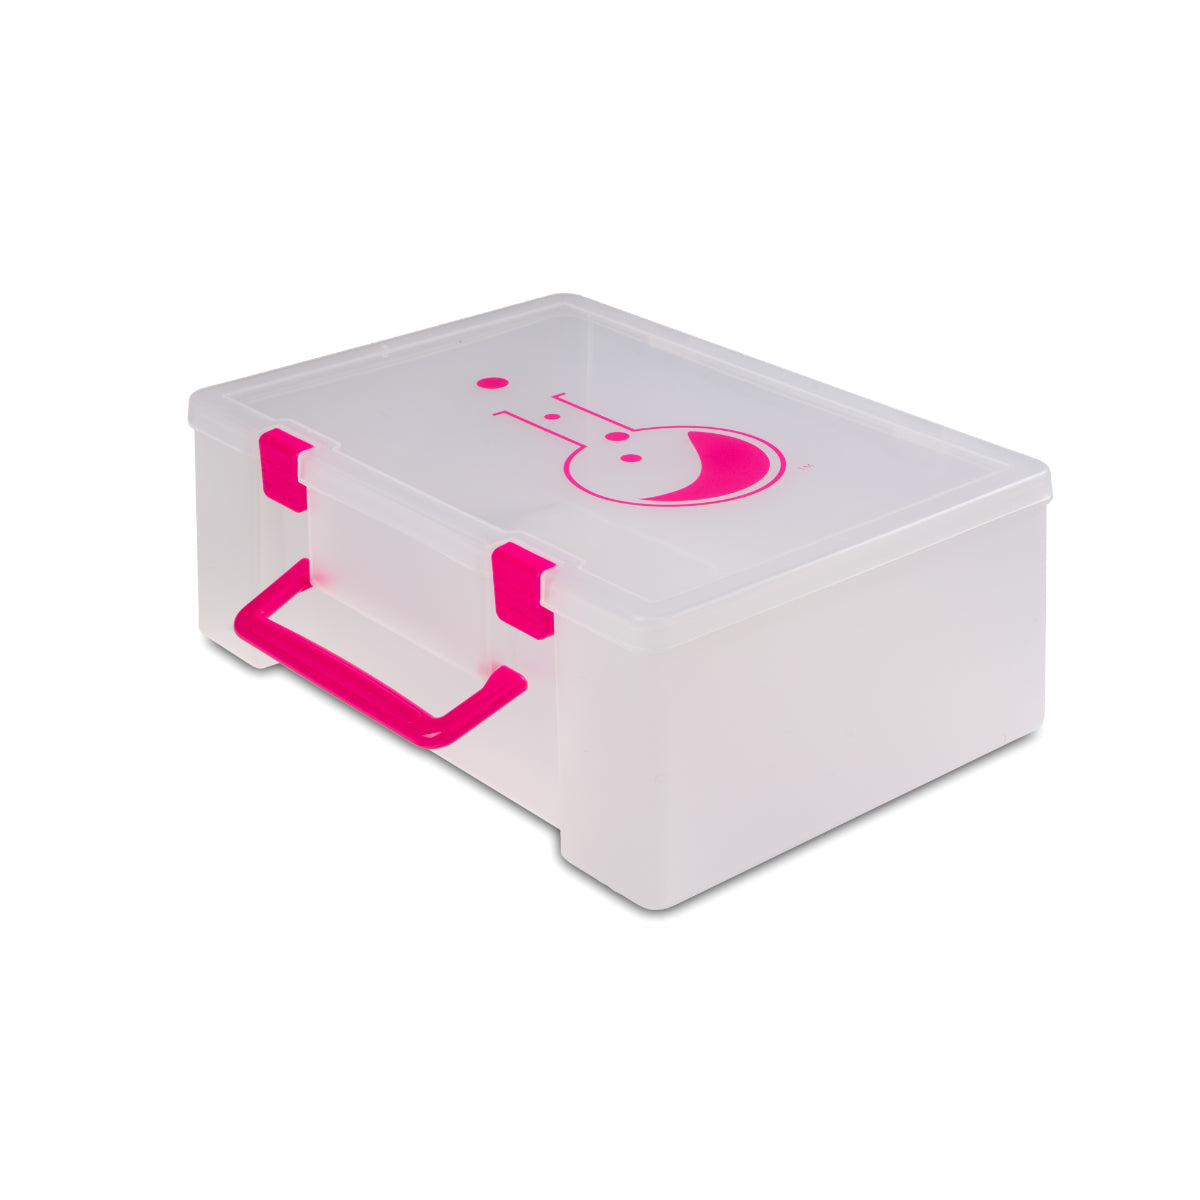 LE Salon Storage Box - Large